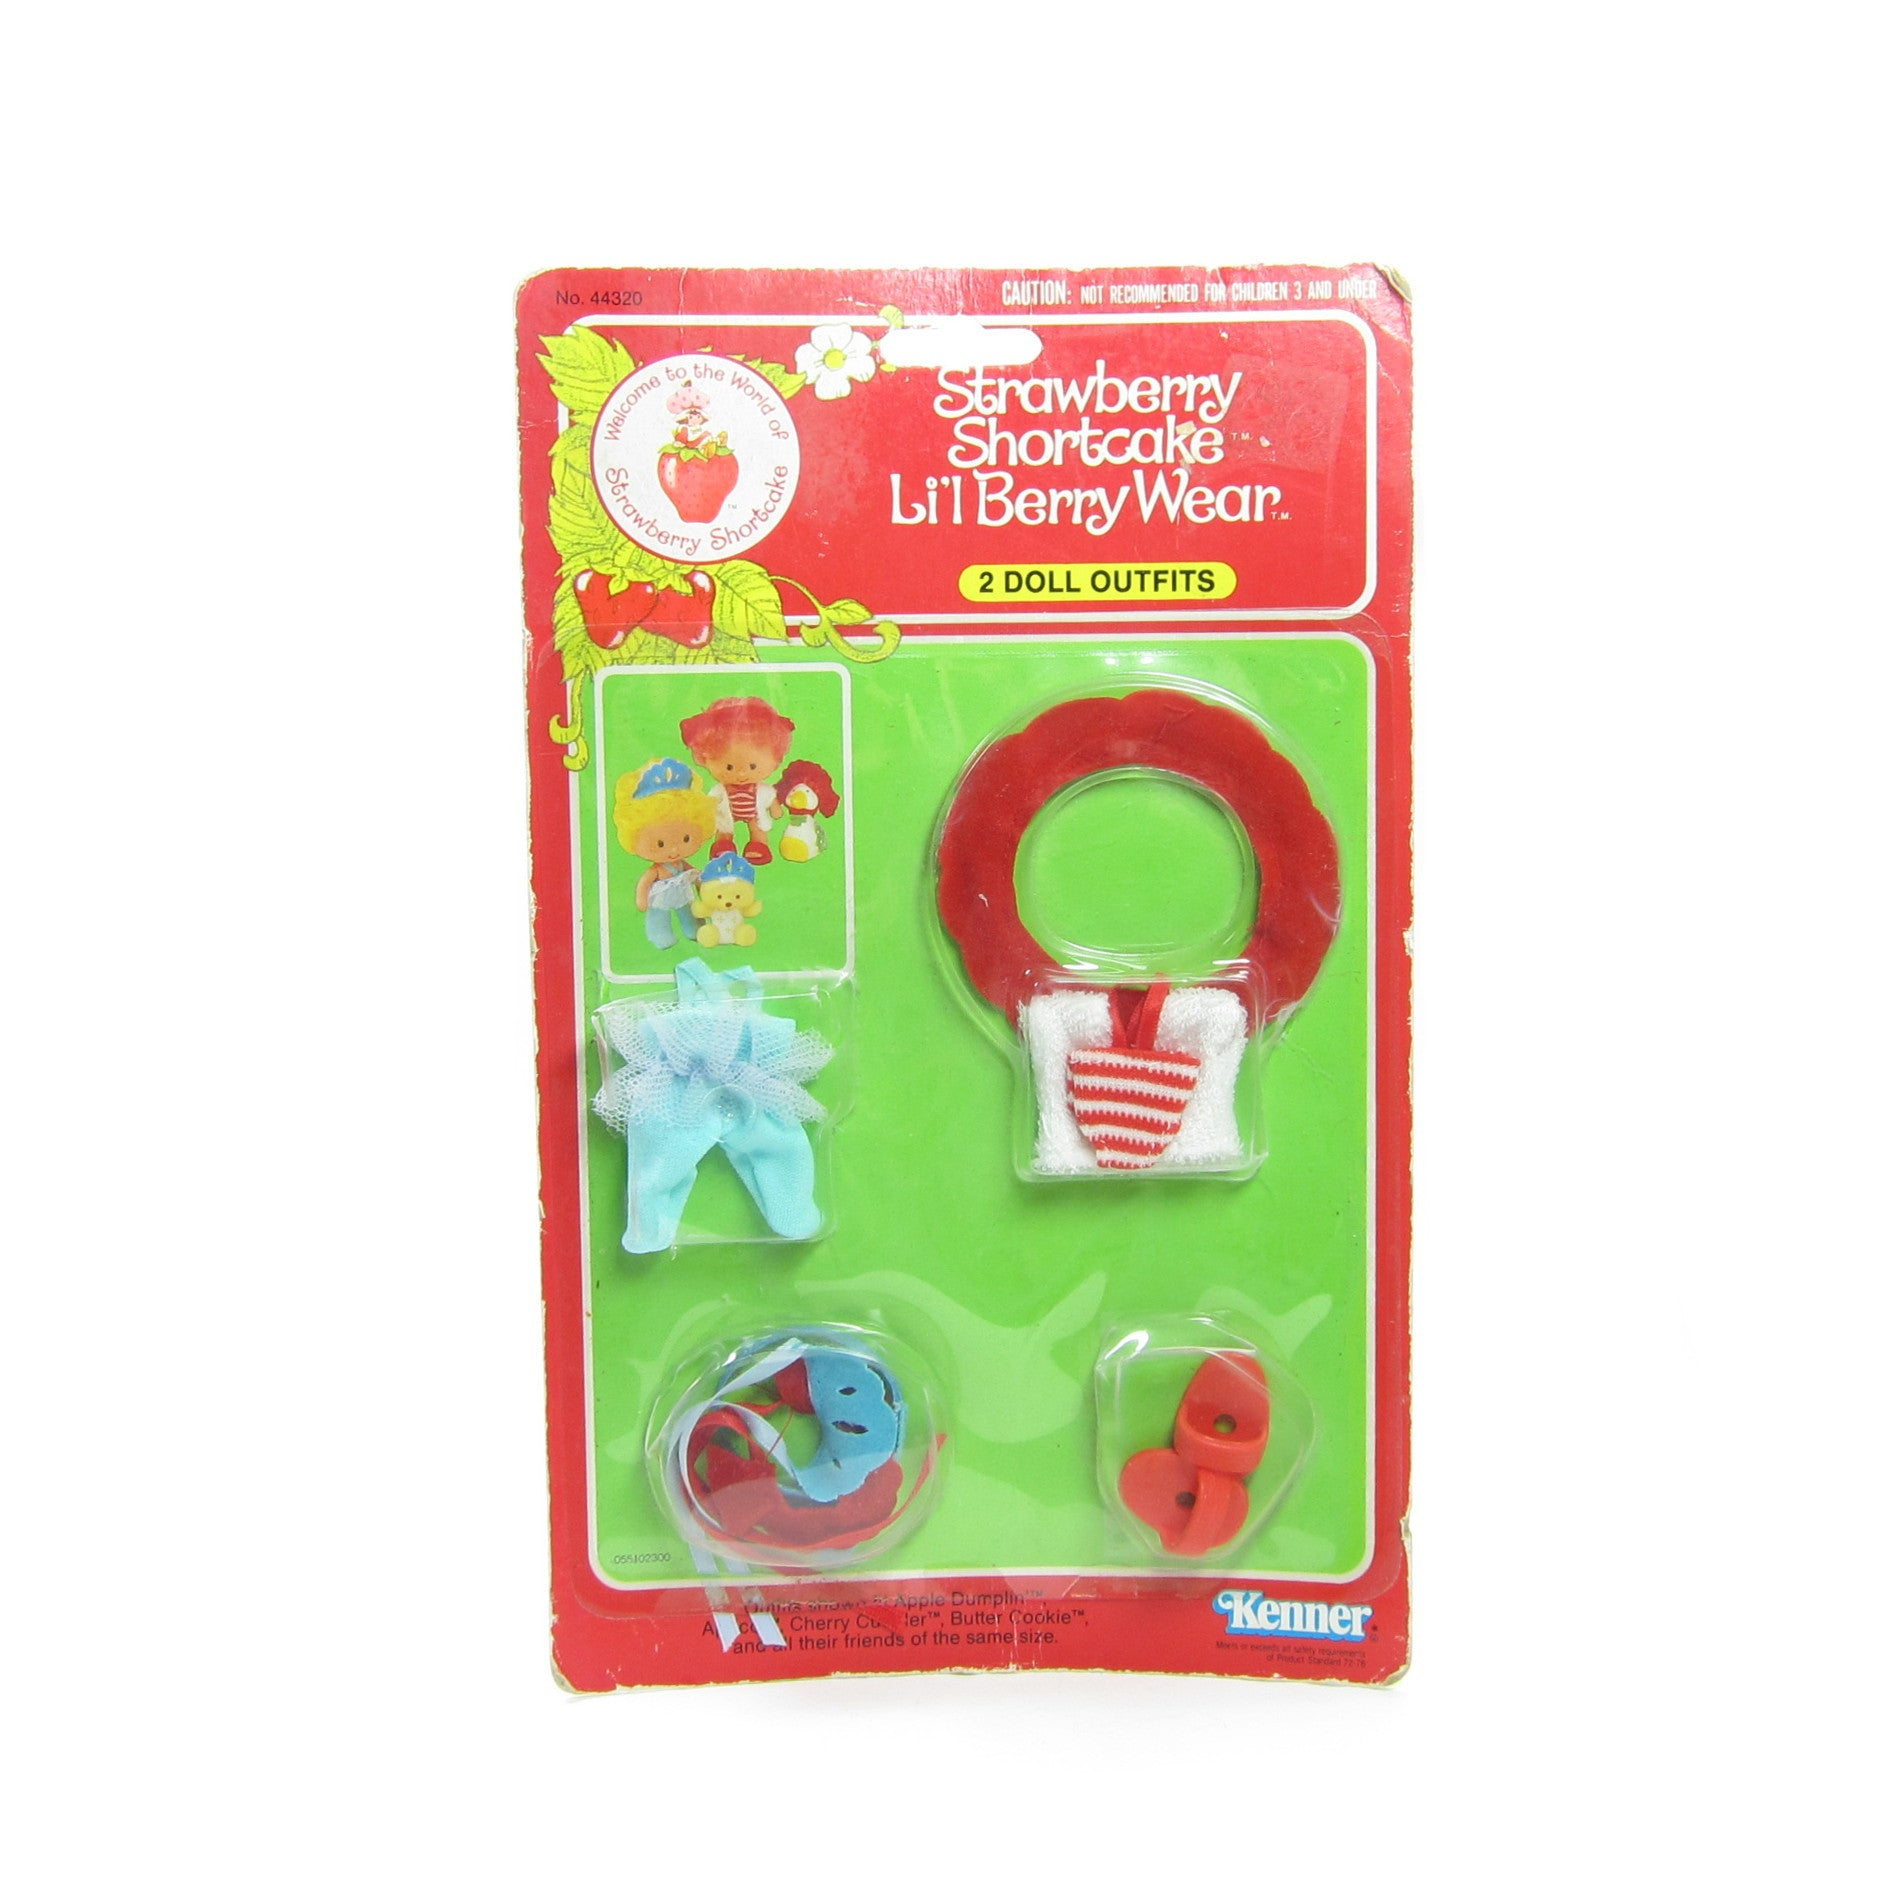 Strawberry Shortcake Berry Wear mint on card outfits